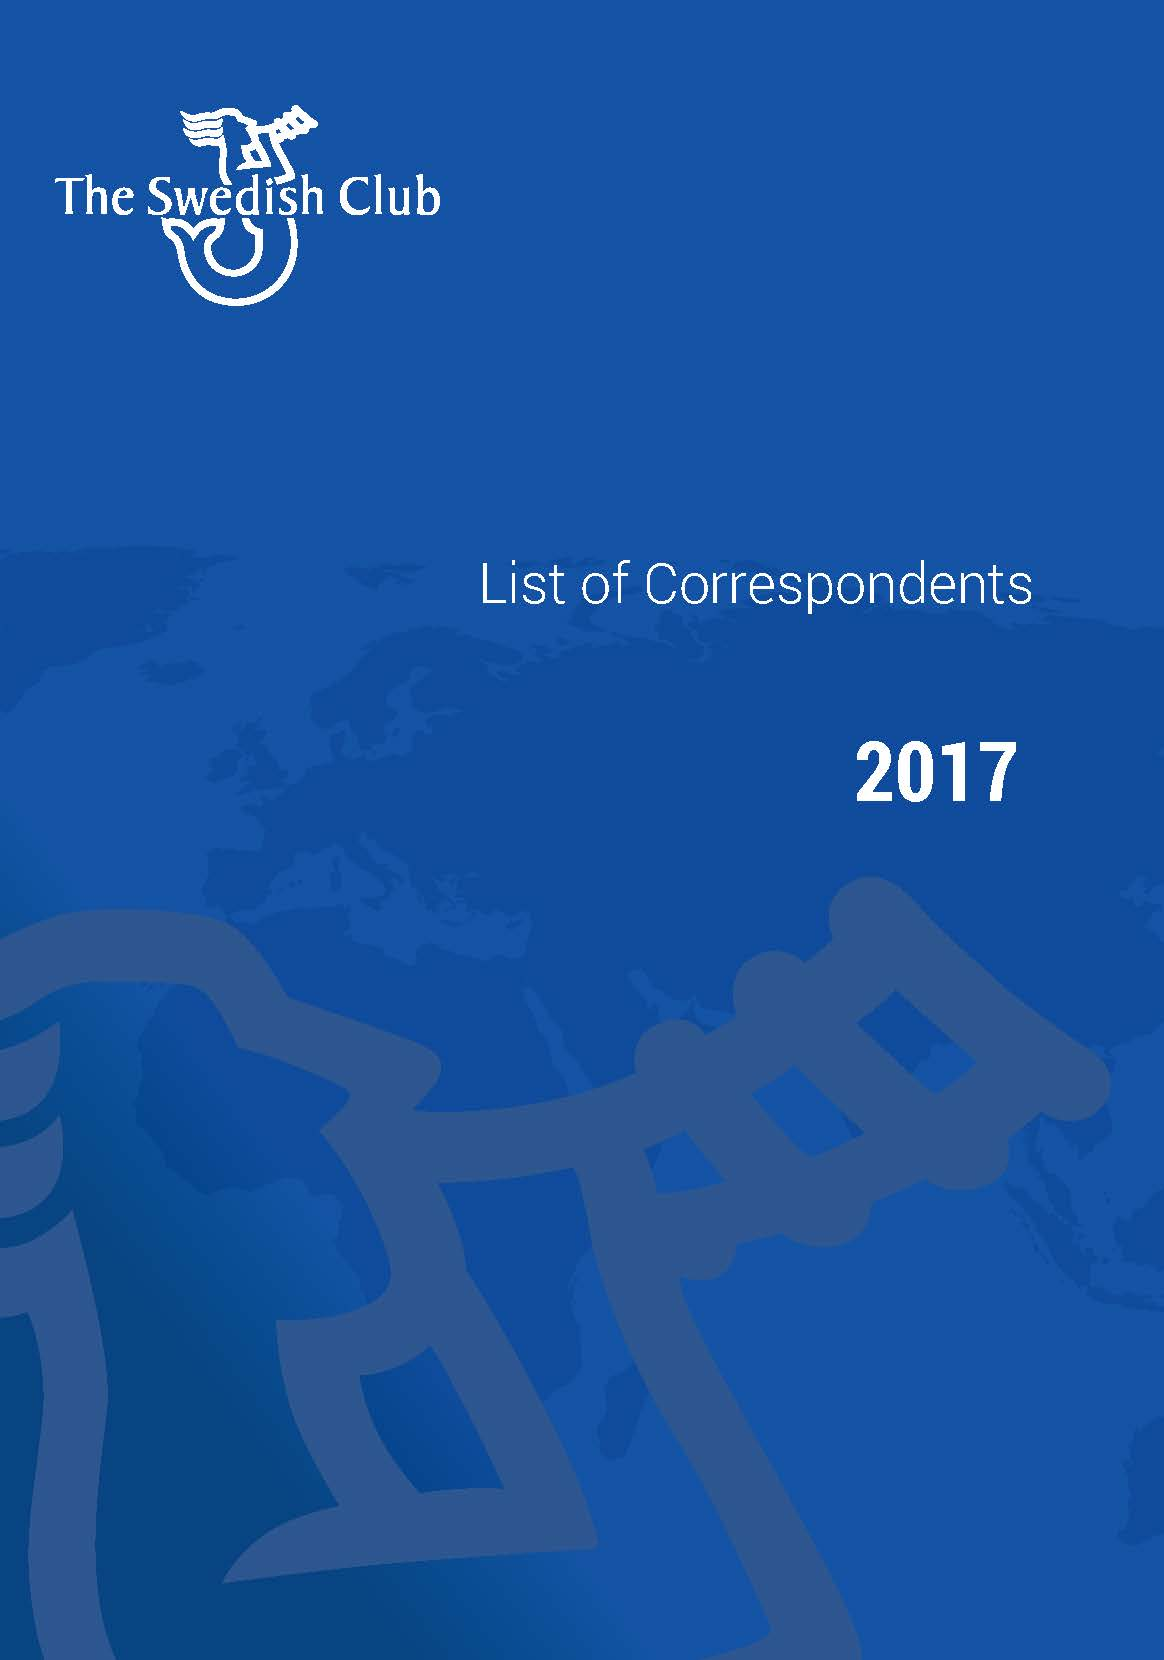 List of Correspondents